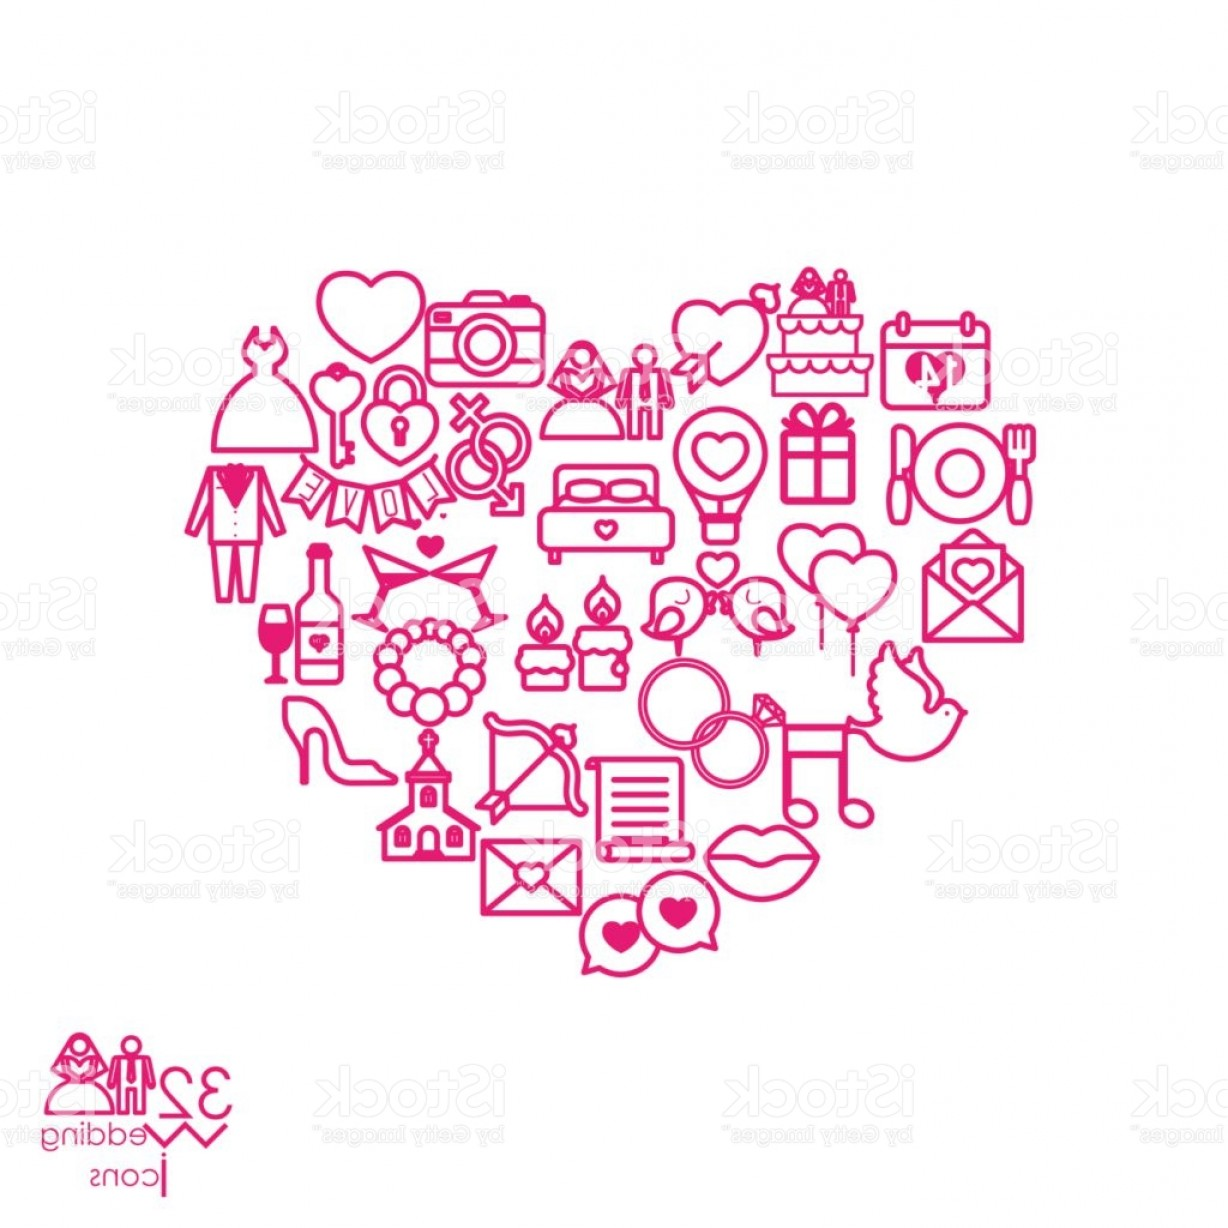 Sign Shapes Vector Art: Love Icon Objects In The Heart Sign Shape Gm